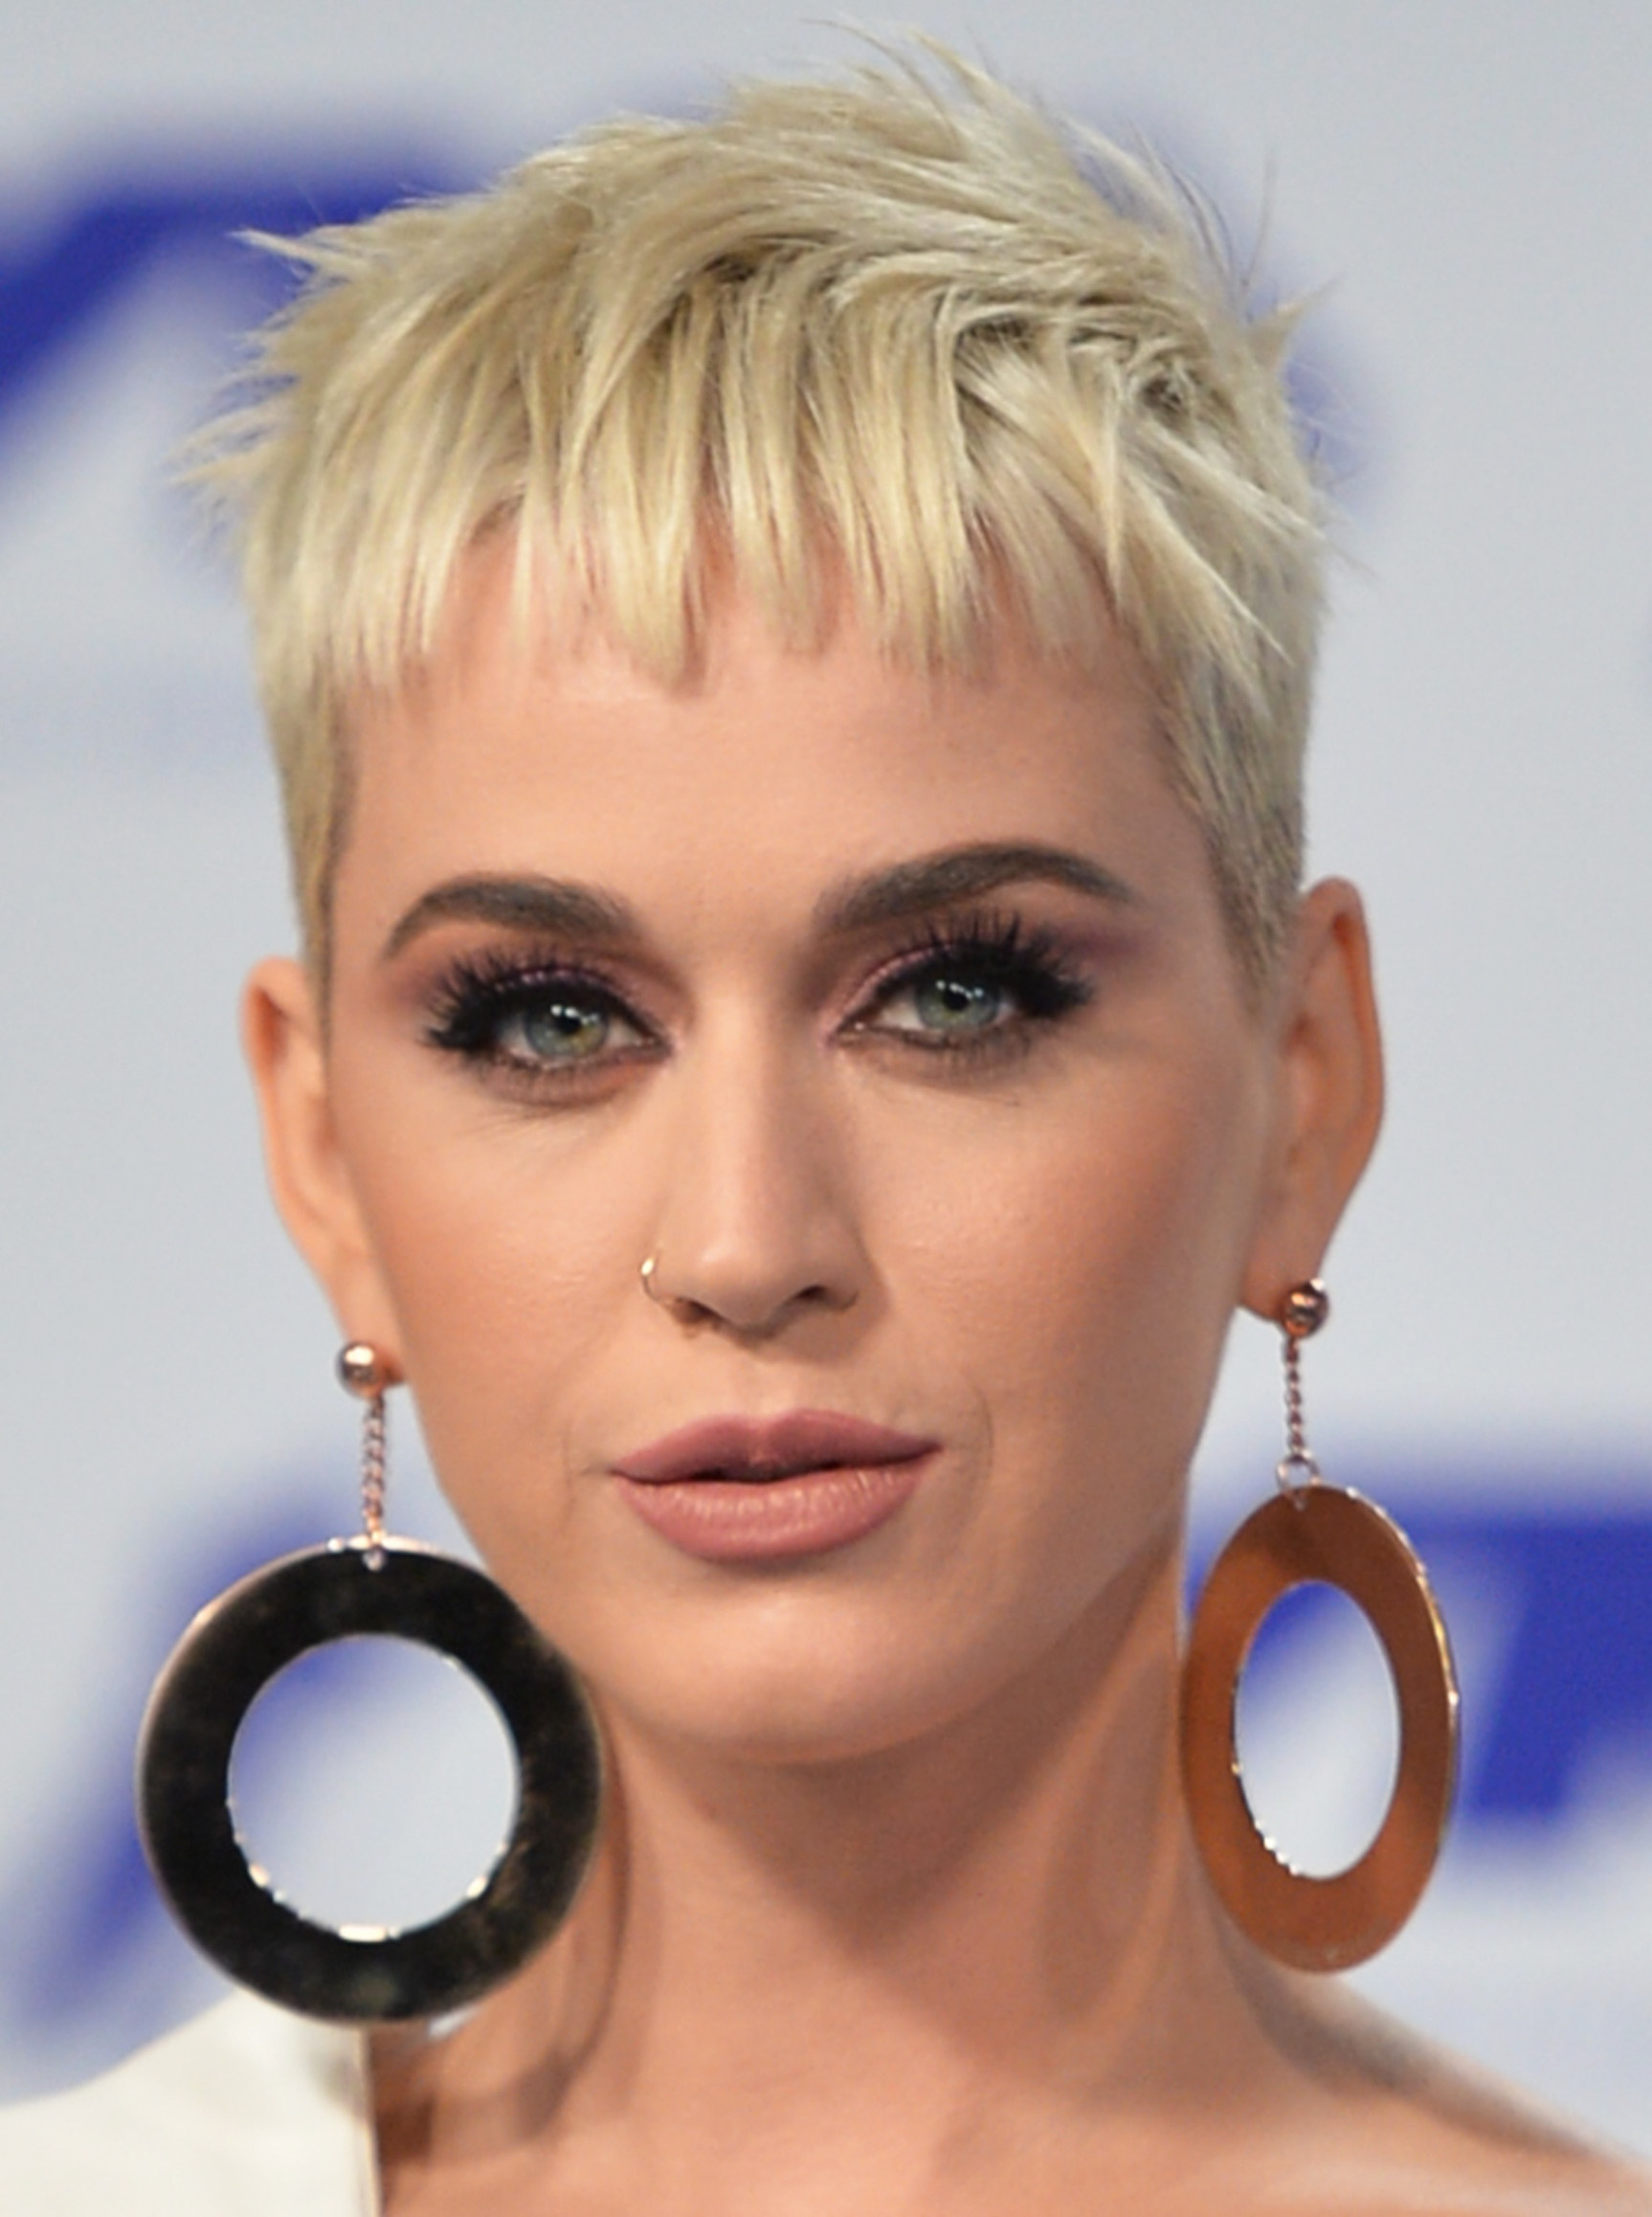 INGLEWOOD, CA - AUGUST 27:  Katy Perry attends the 2017 MTV Video Music Awards at The Forum on August 27, 2017 in Inglewood, California.  (Photo by Alberto E. Rodriguez/Getty Images)